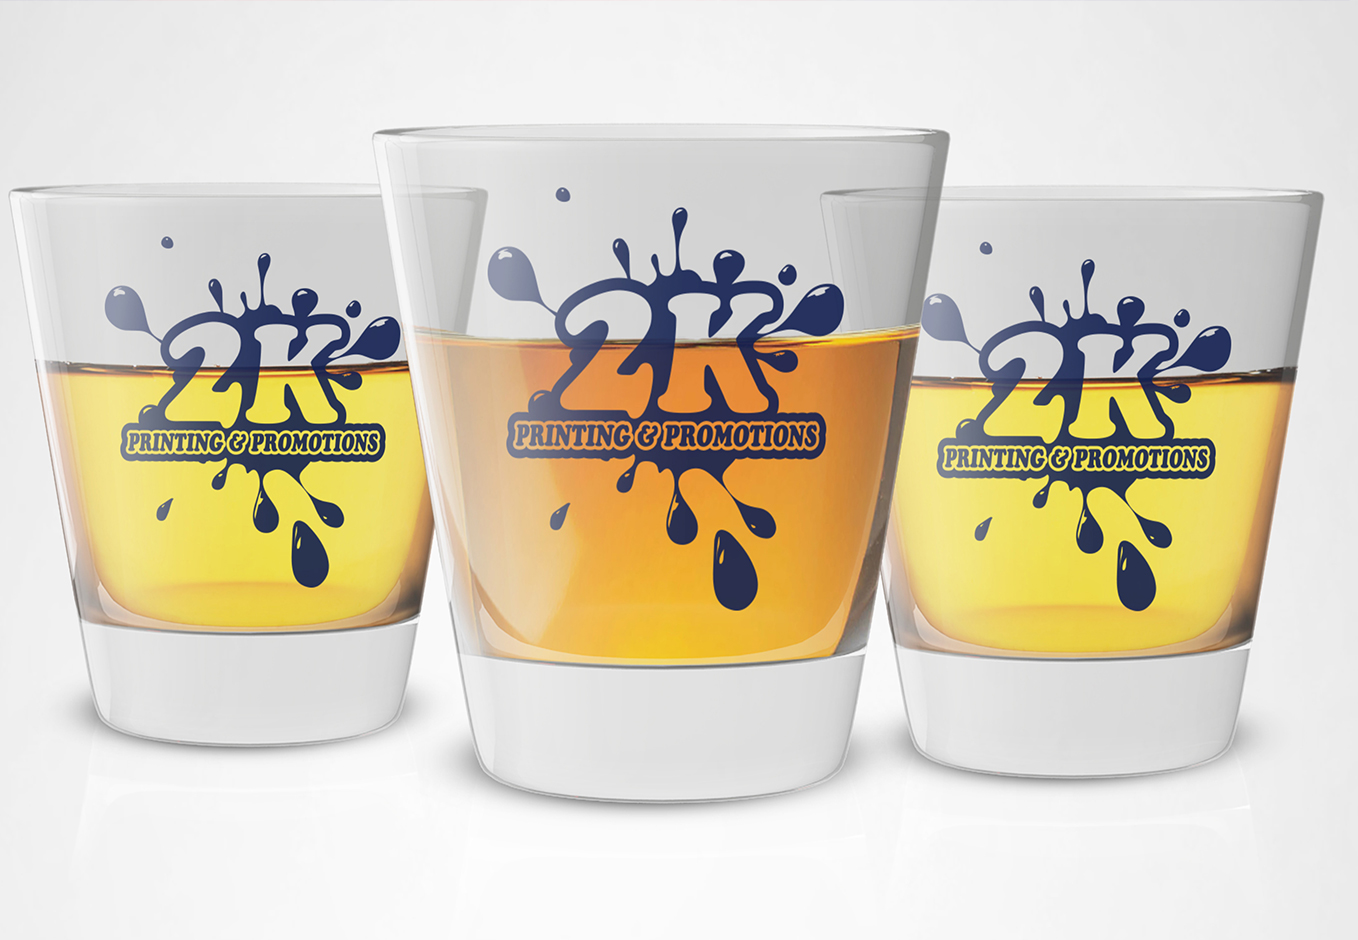 58c09621 Custom Apparel, Promotional Items & More! 2K Printing & Promotions